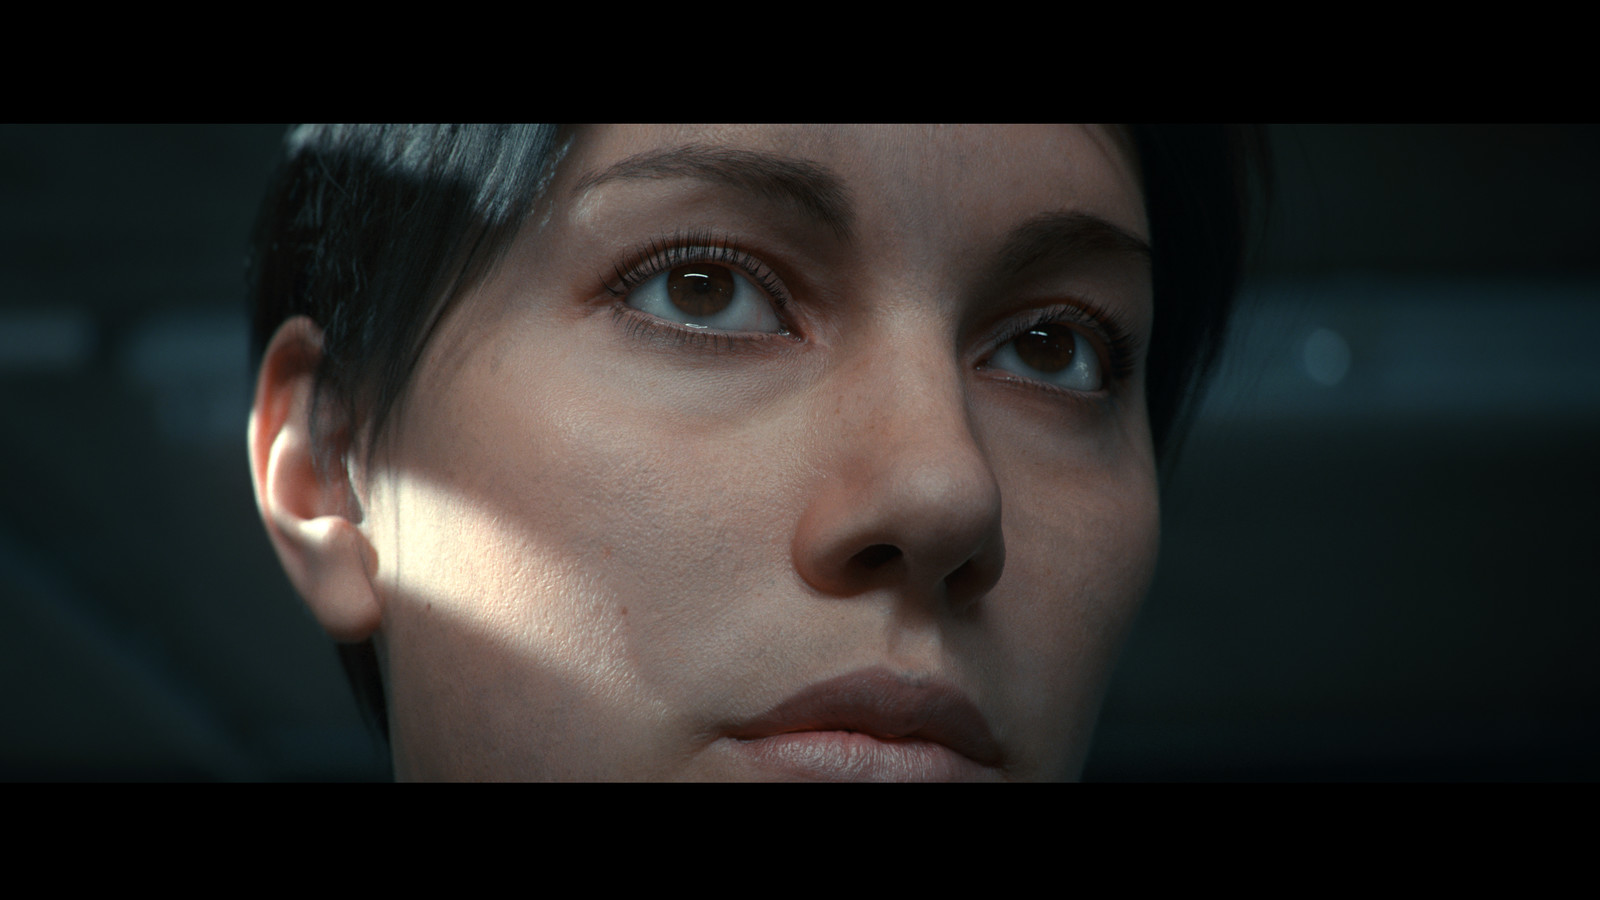 TexturingXYZ for the displacement of the face, amazing maps,I hightly recommend those maps